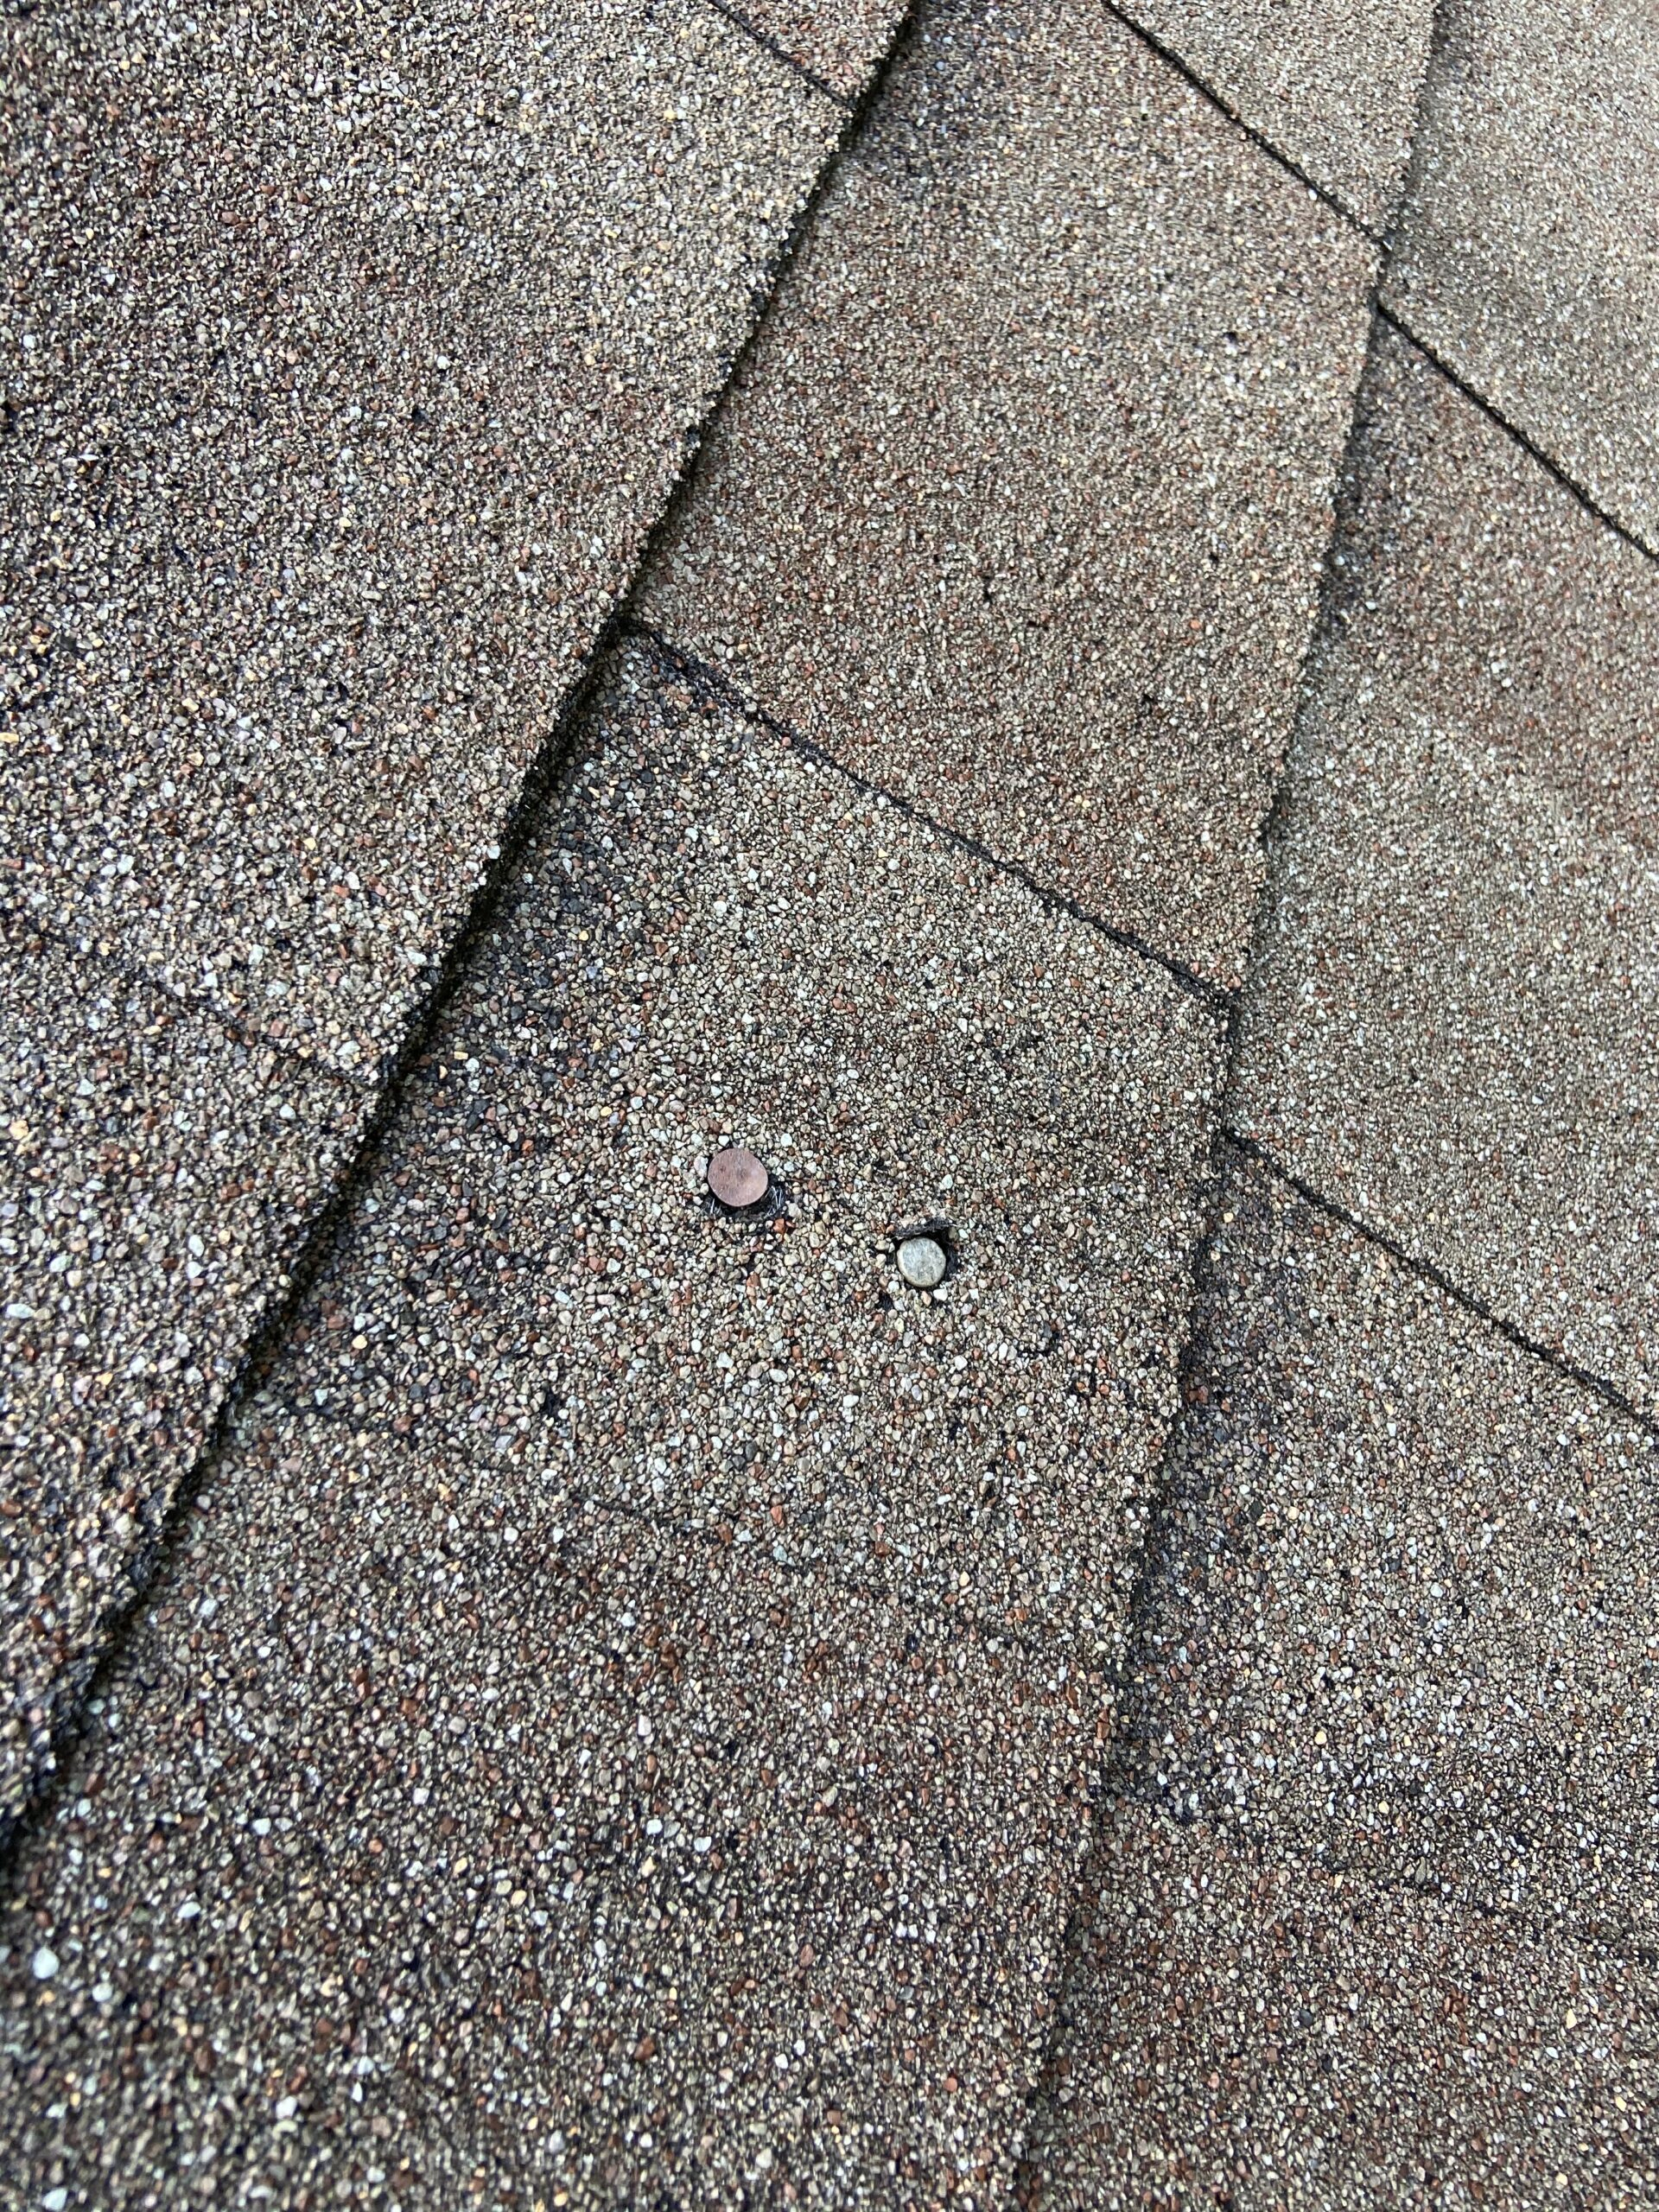 Nails poping causing roof leaks